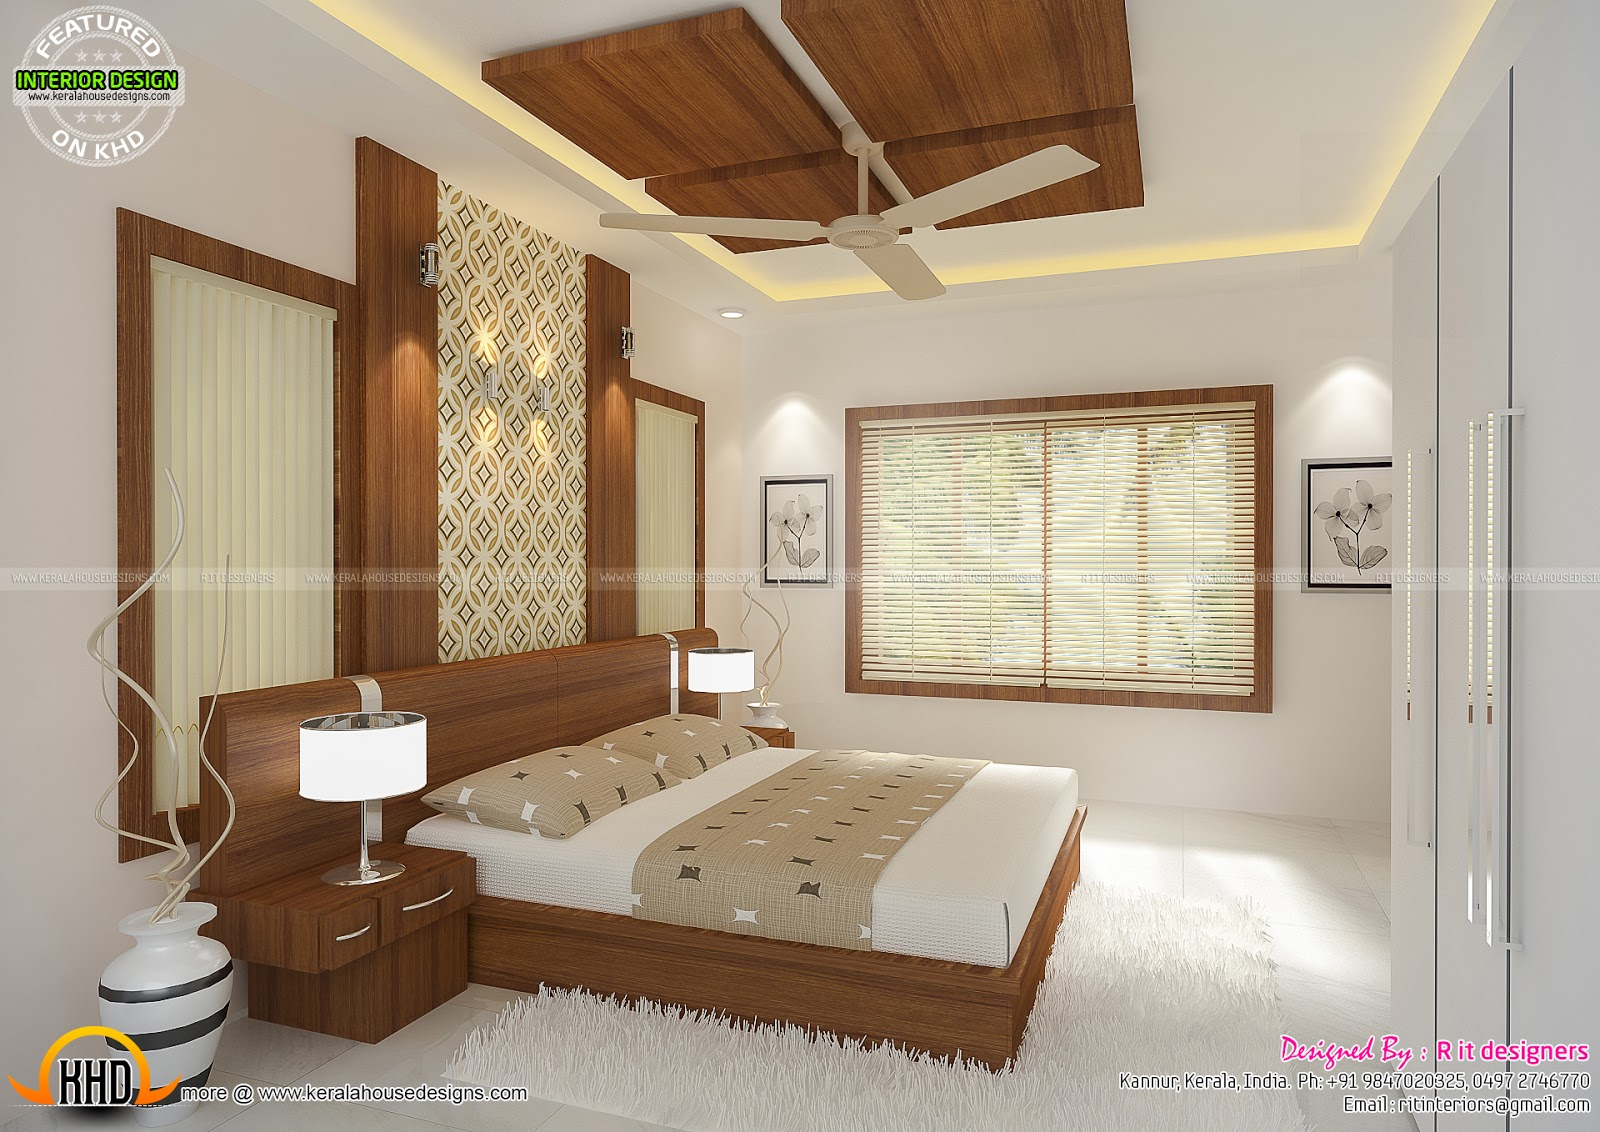 Interiors of bedrooms and kitchen kerala home design and for Bedroom interior design india